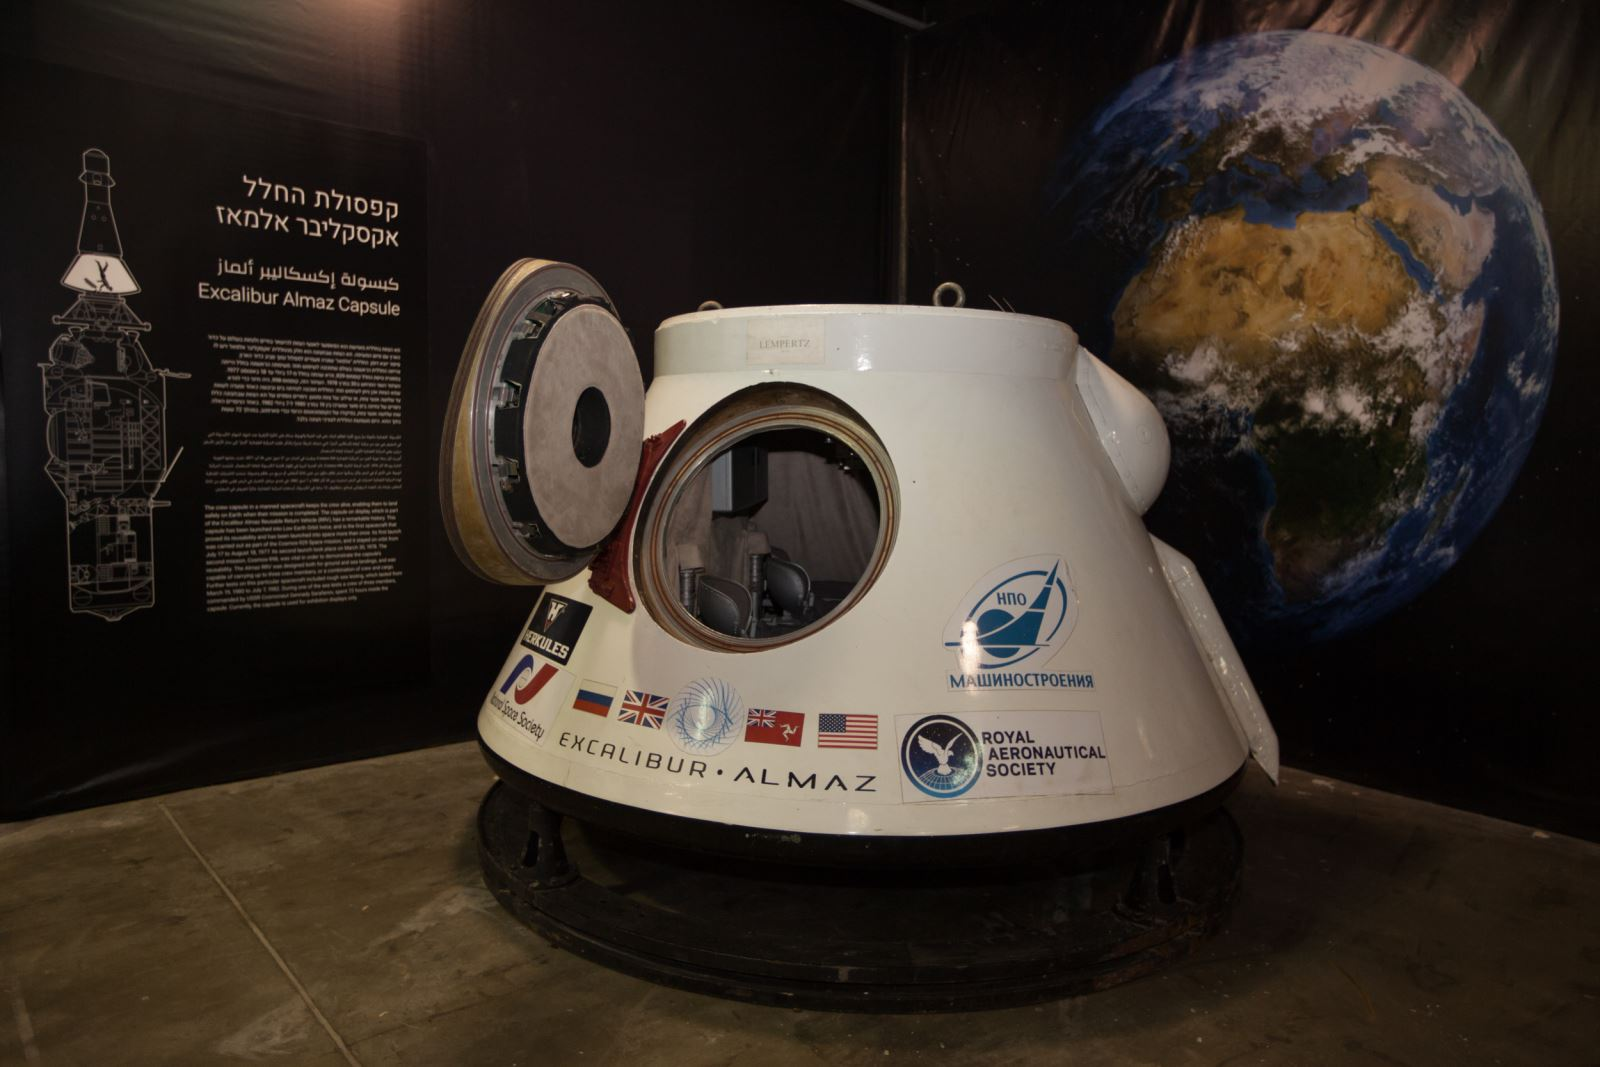 Man and Space Exhibition